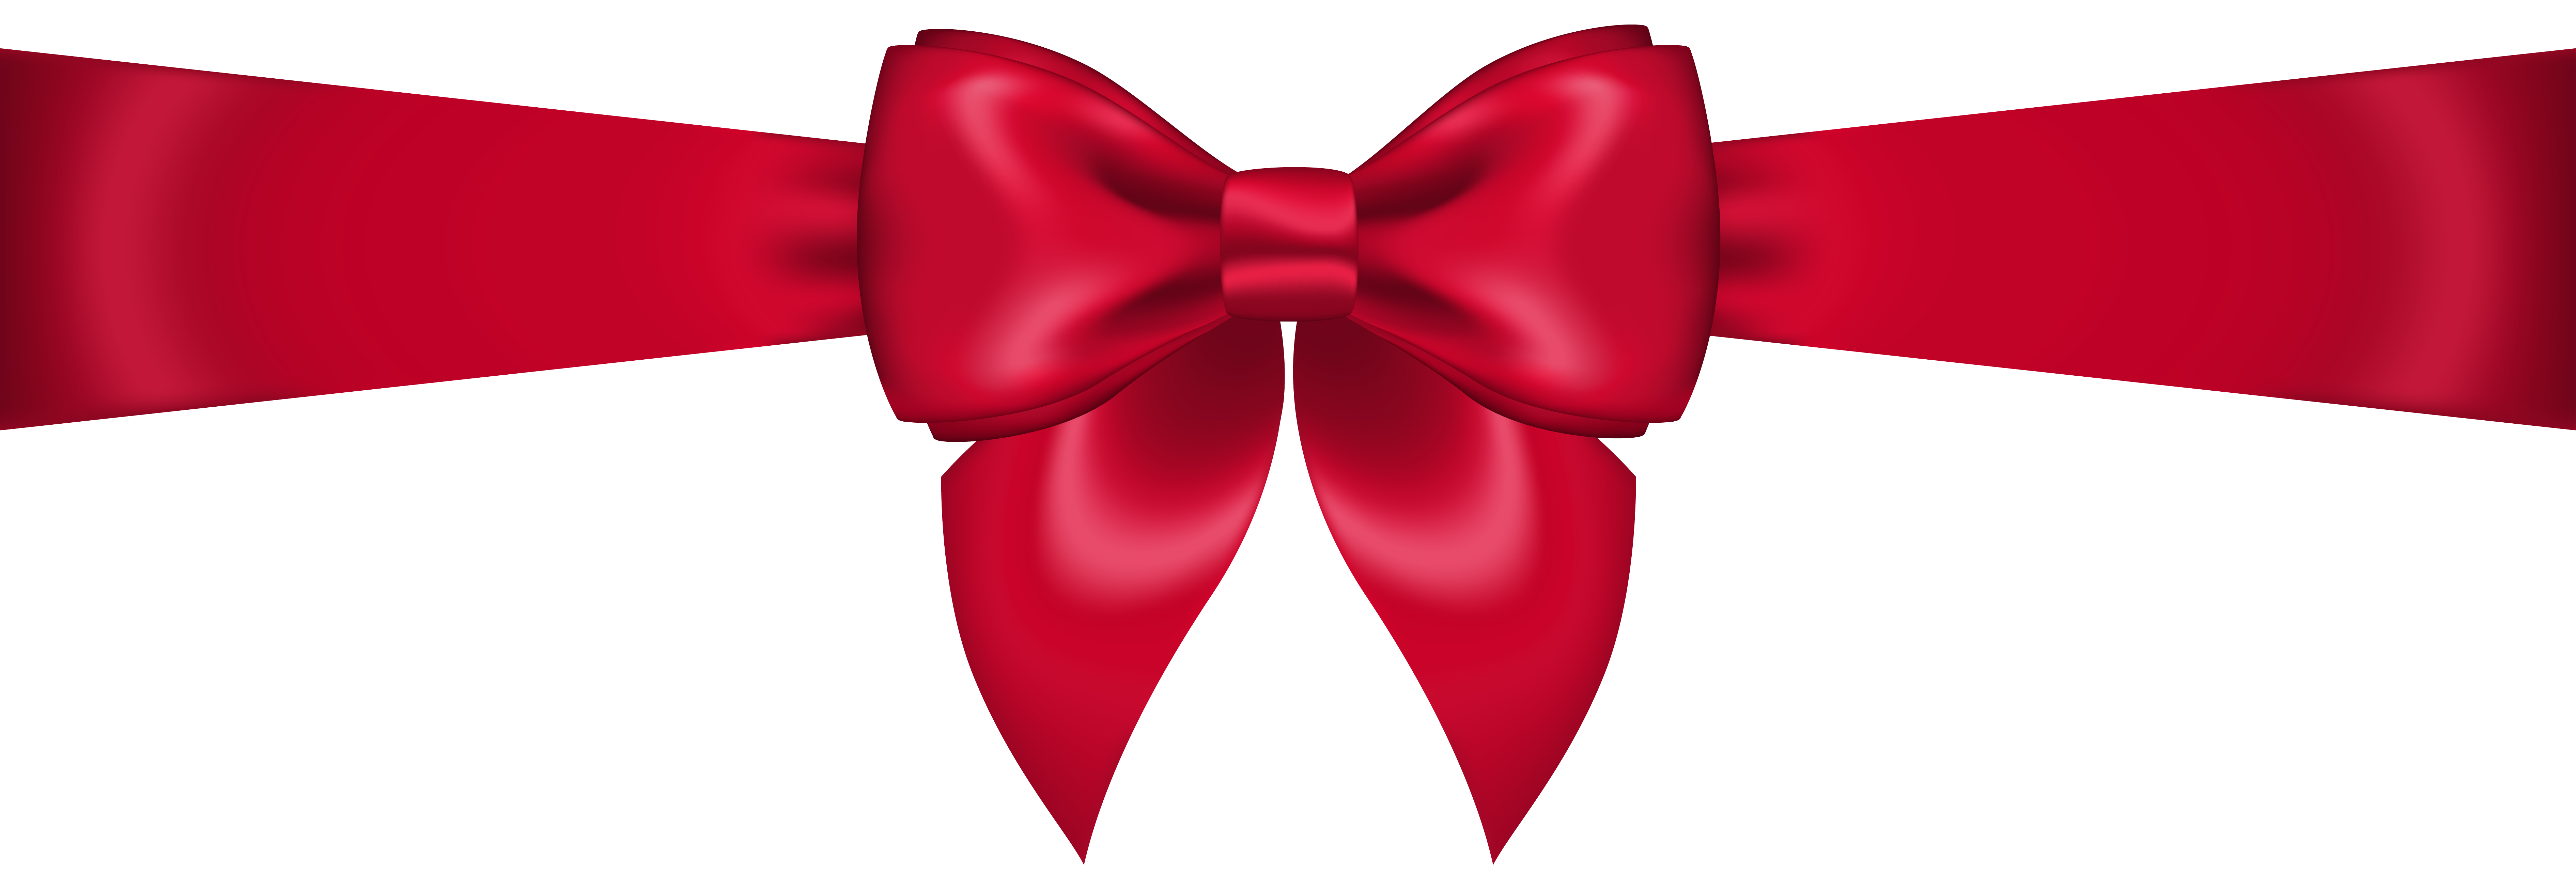 7562x2619 Red Bow Transparent Png Clip Art Clippart. Clipart